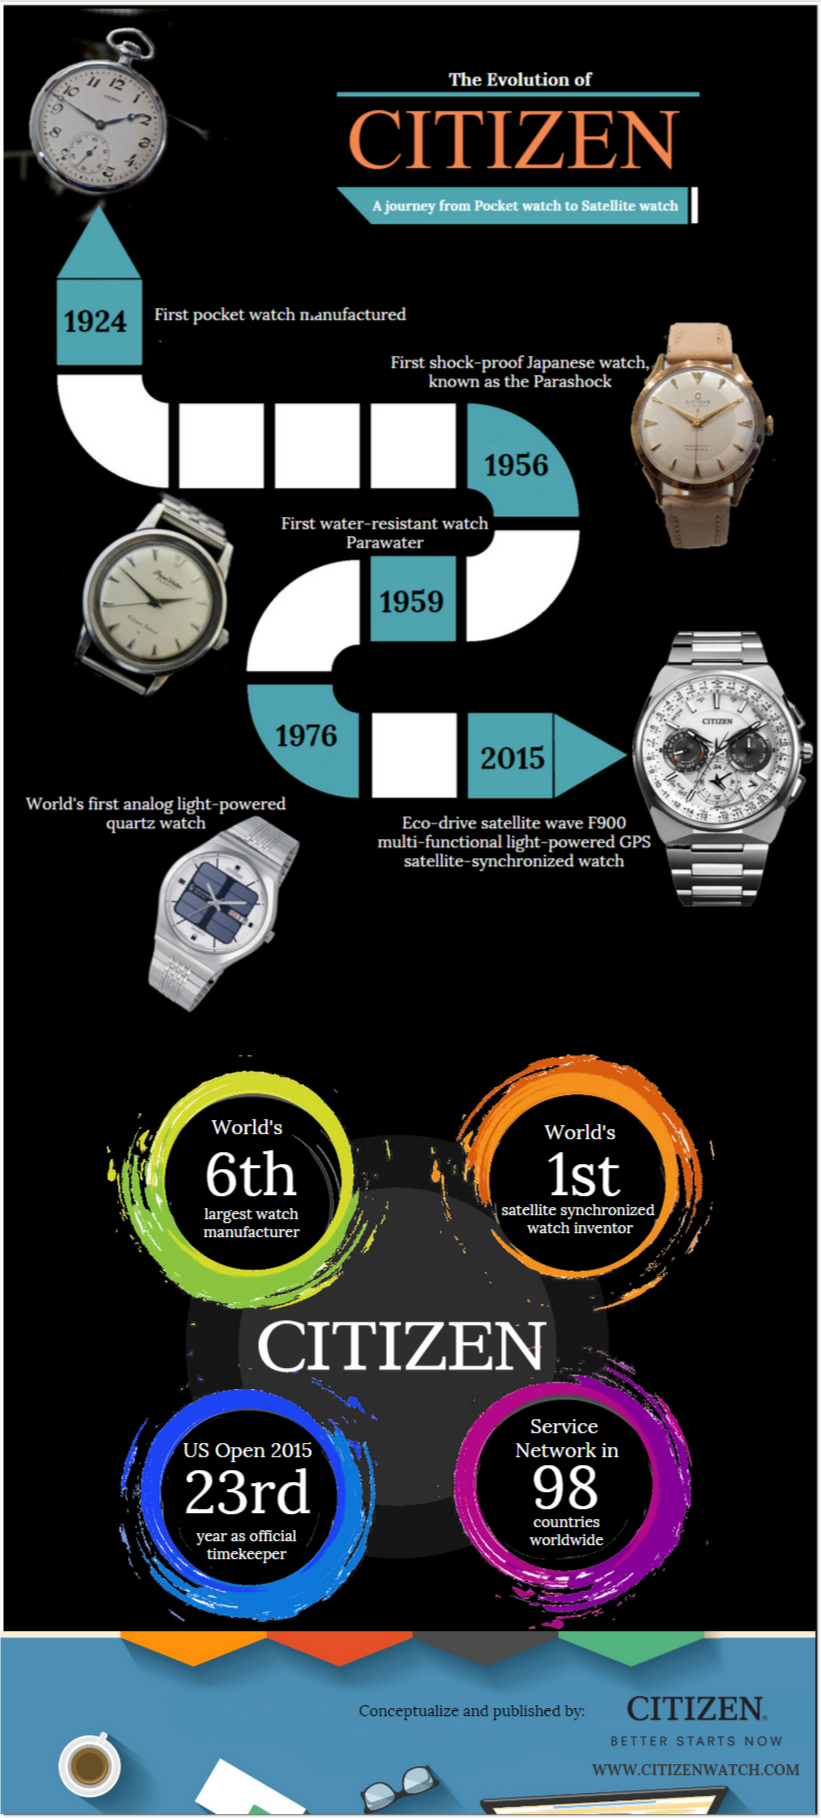 The Evolution of Citizen Watch